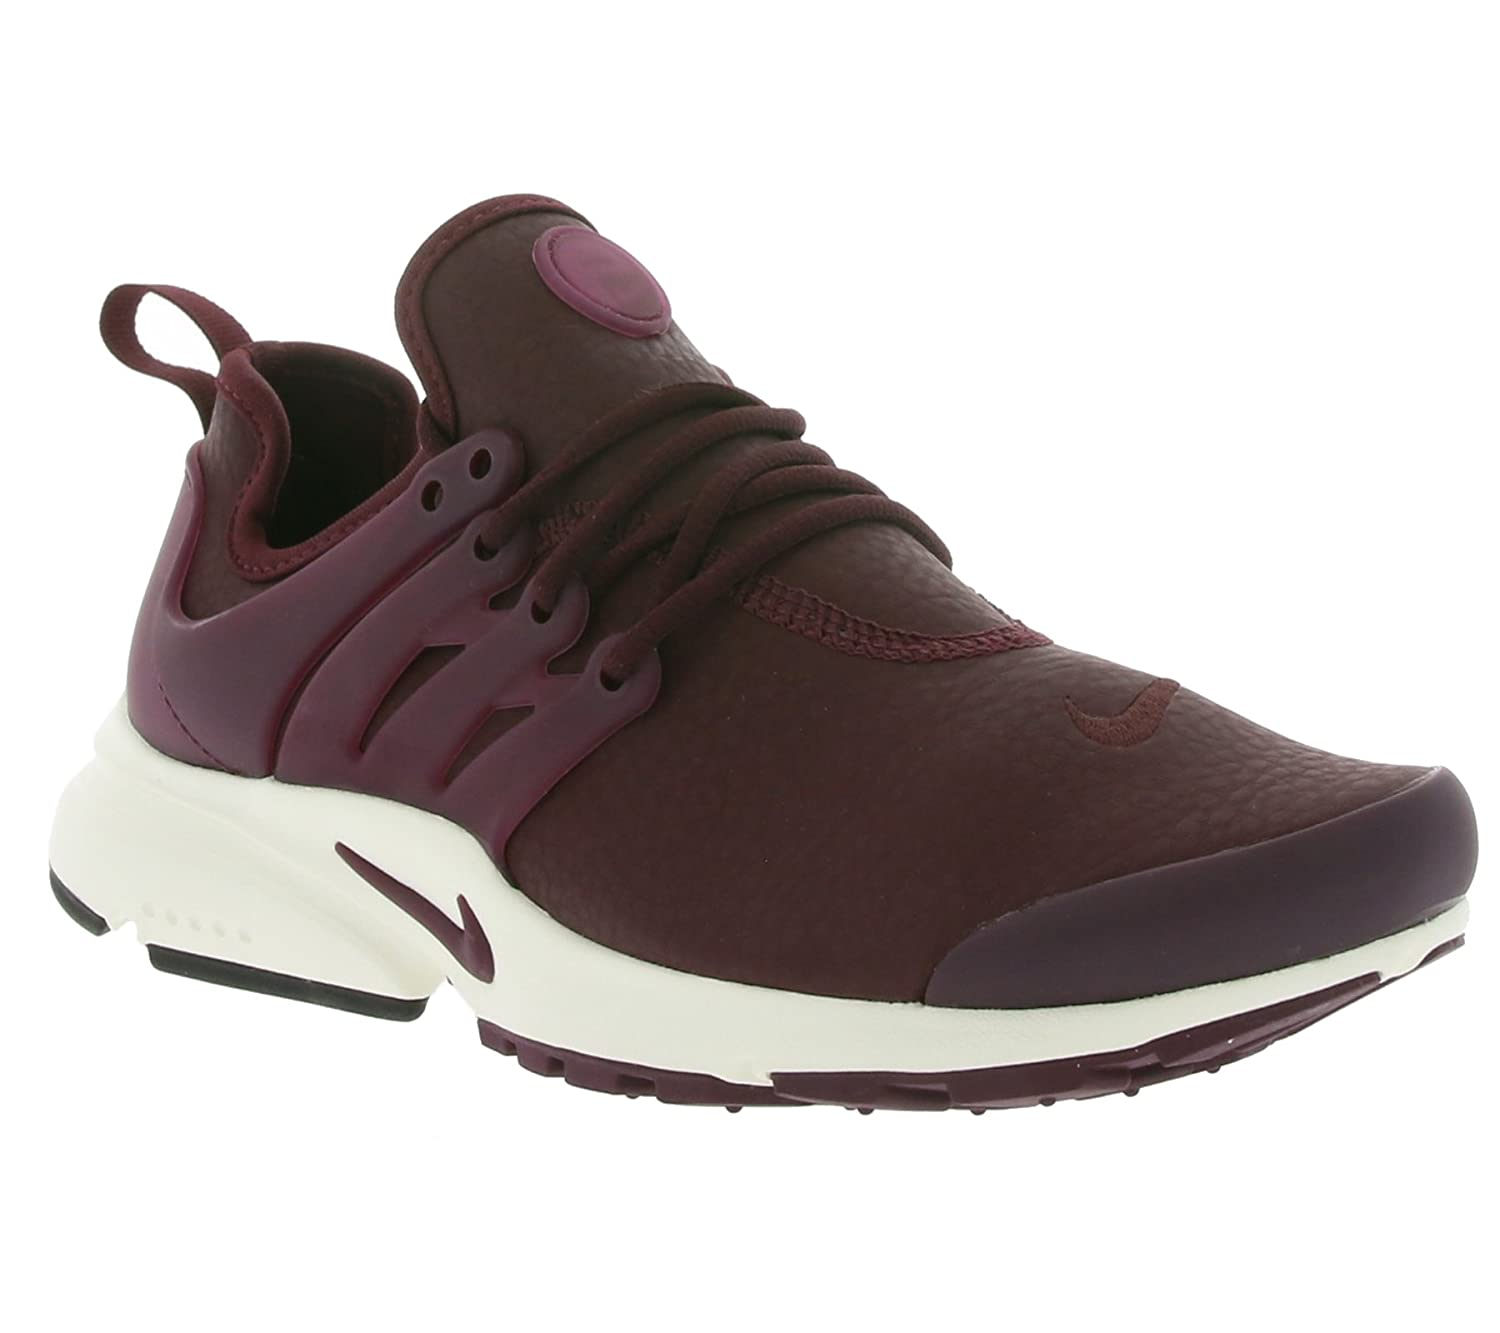 f1e71156450f Nike Women s Air Presto Premium Shoes Maroon (Night Maroon Sail Night Maroon)  5 UK  Amazon.co.uk  Shoes   Bags